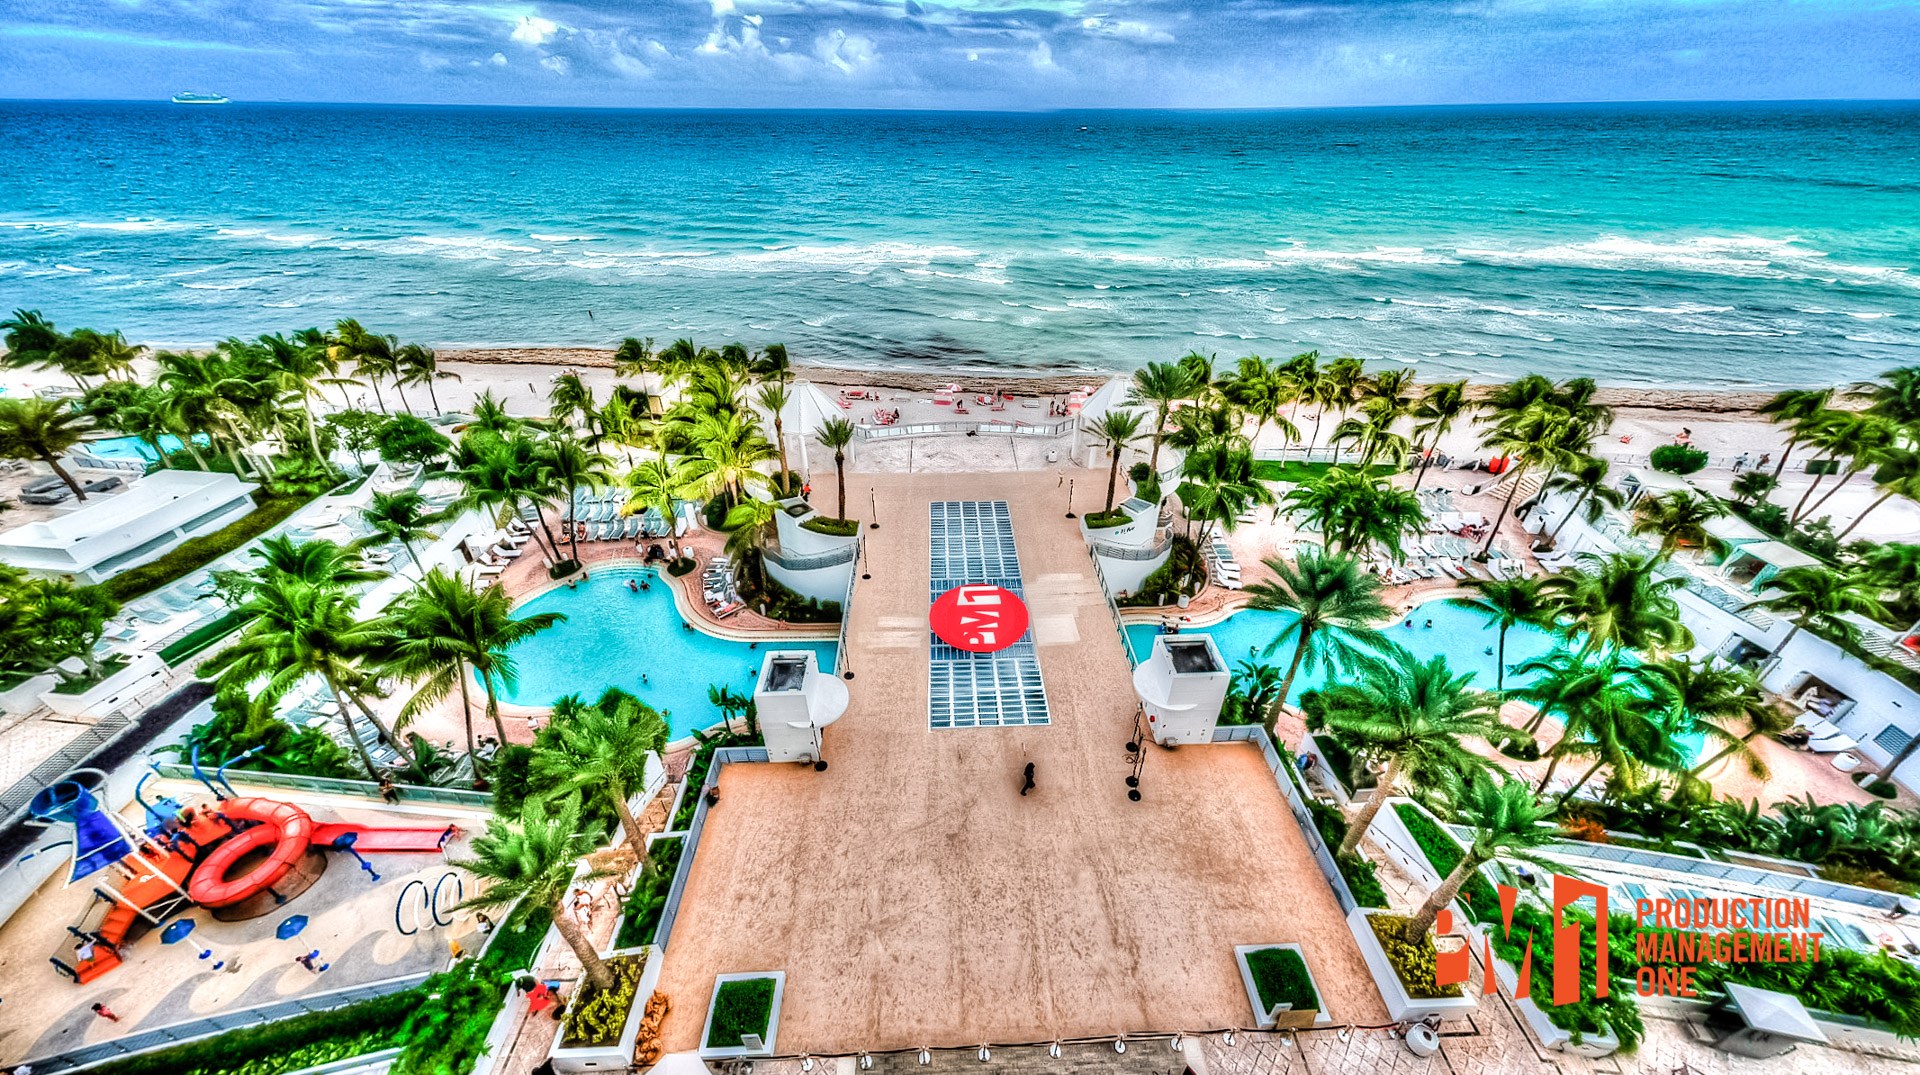 Trade Show Pool Cover in Fort Lauderdale, Florida